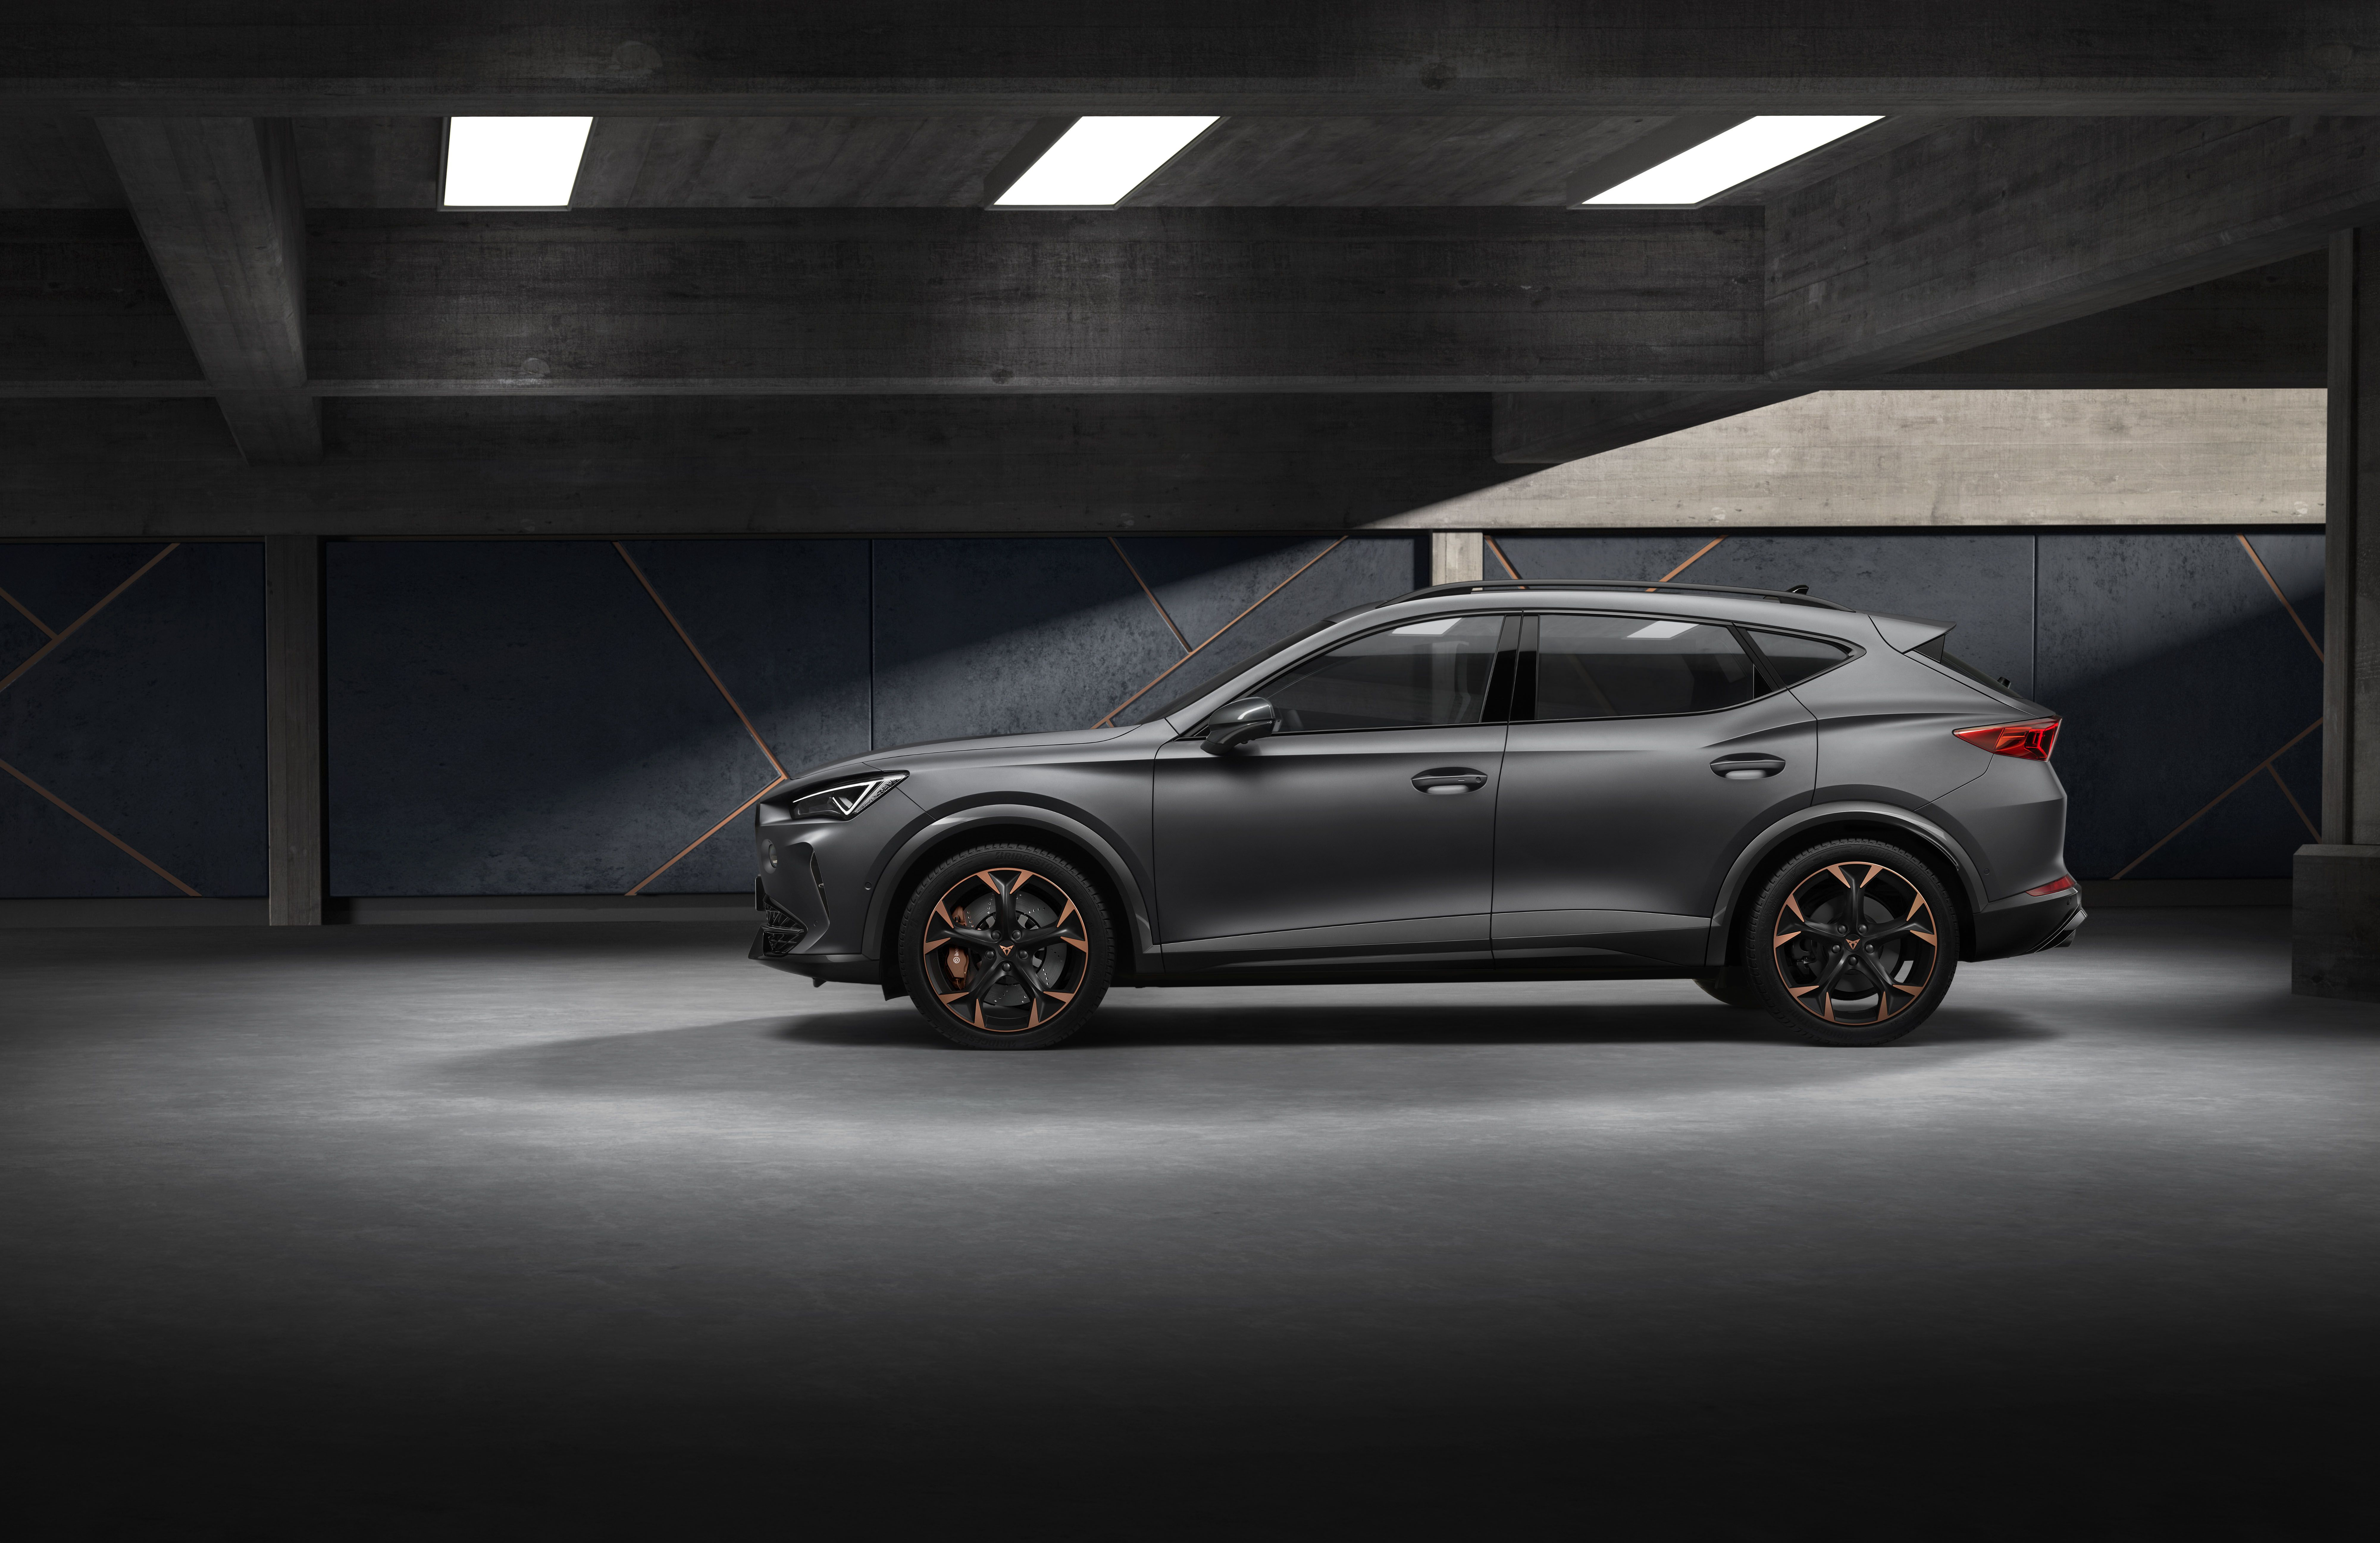 Side view of the CUPRA Formentor